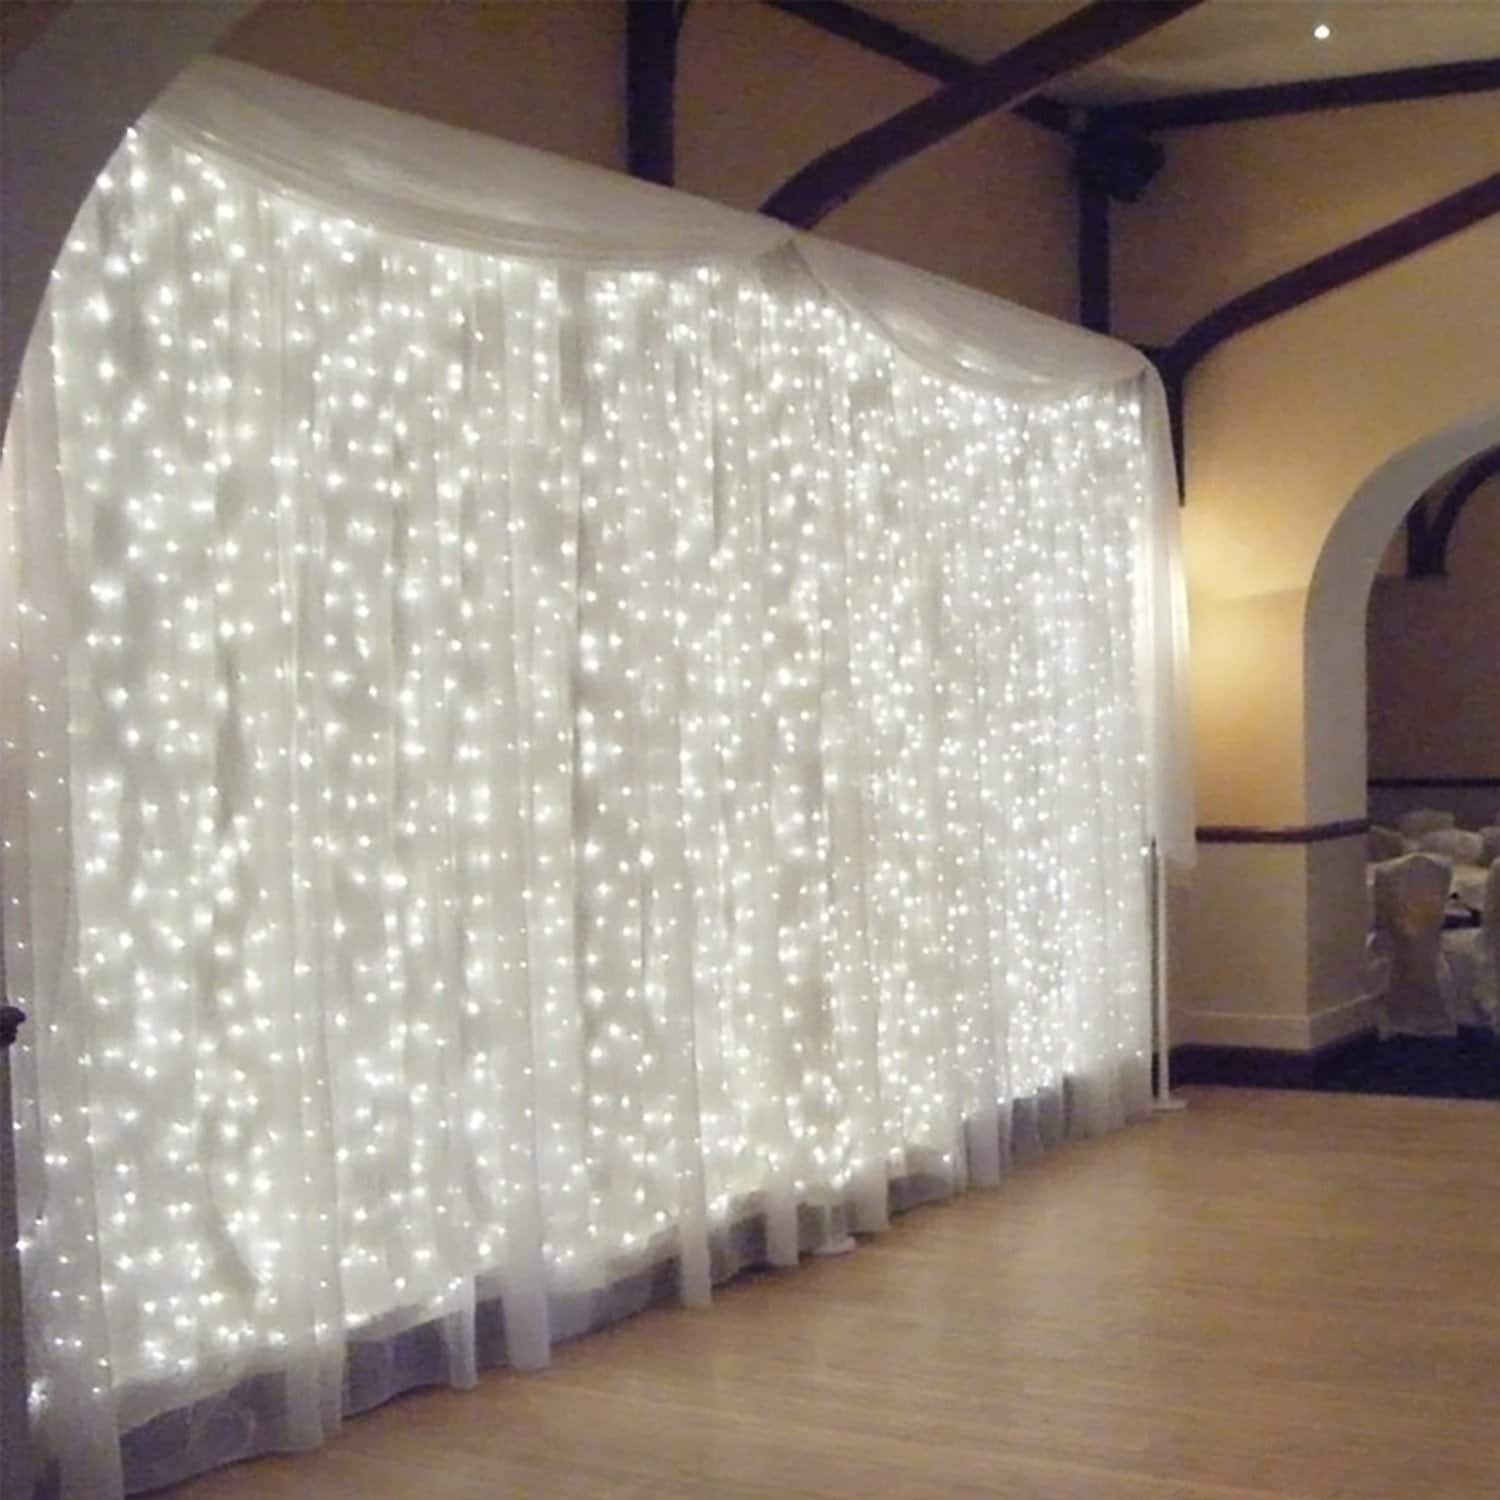 Various Decorative Curtain Lights On Sale from $9.59 + FS